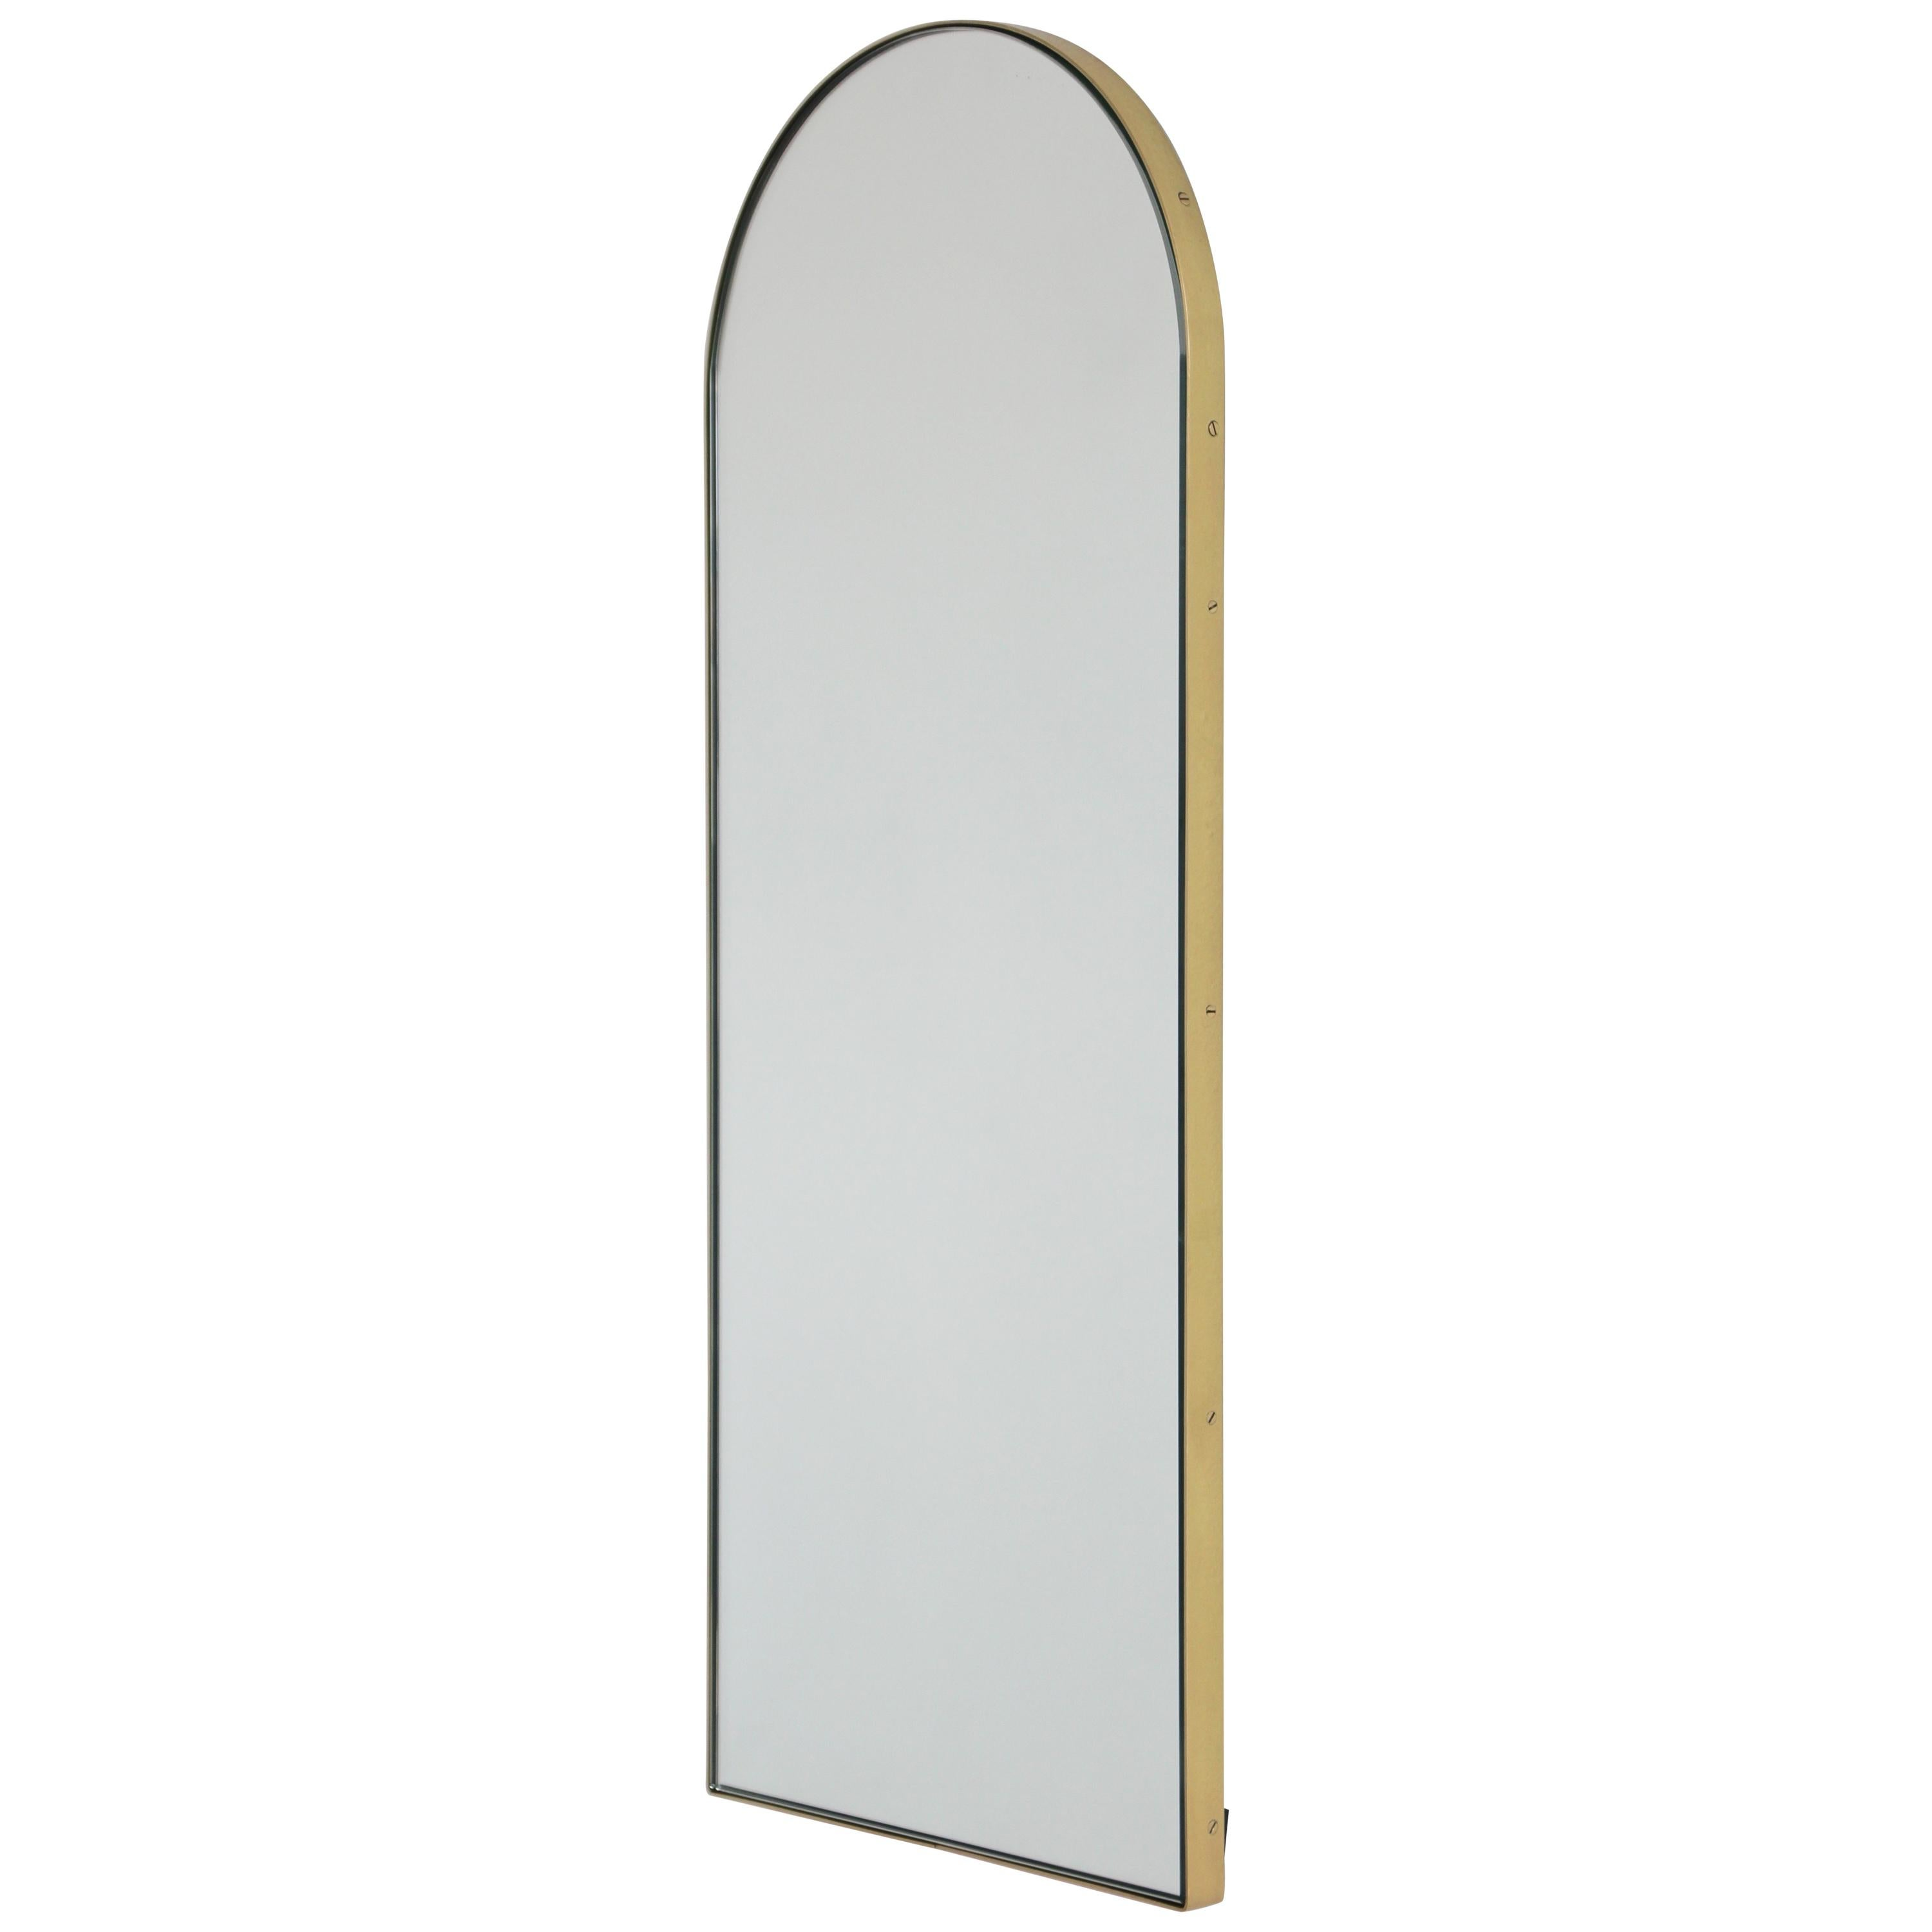 Arcus Arch Shaped Narrow Art Deco Elegant Mirror With Brass Frame For Sale At 1stdibs